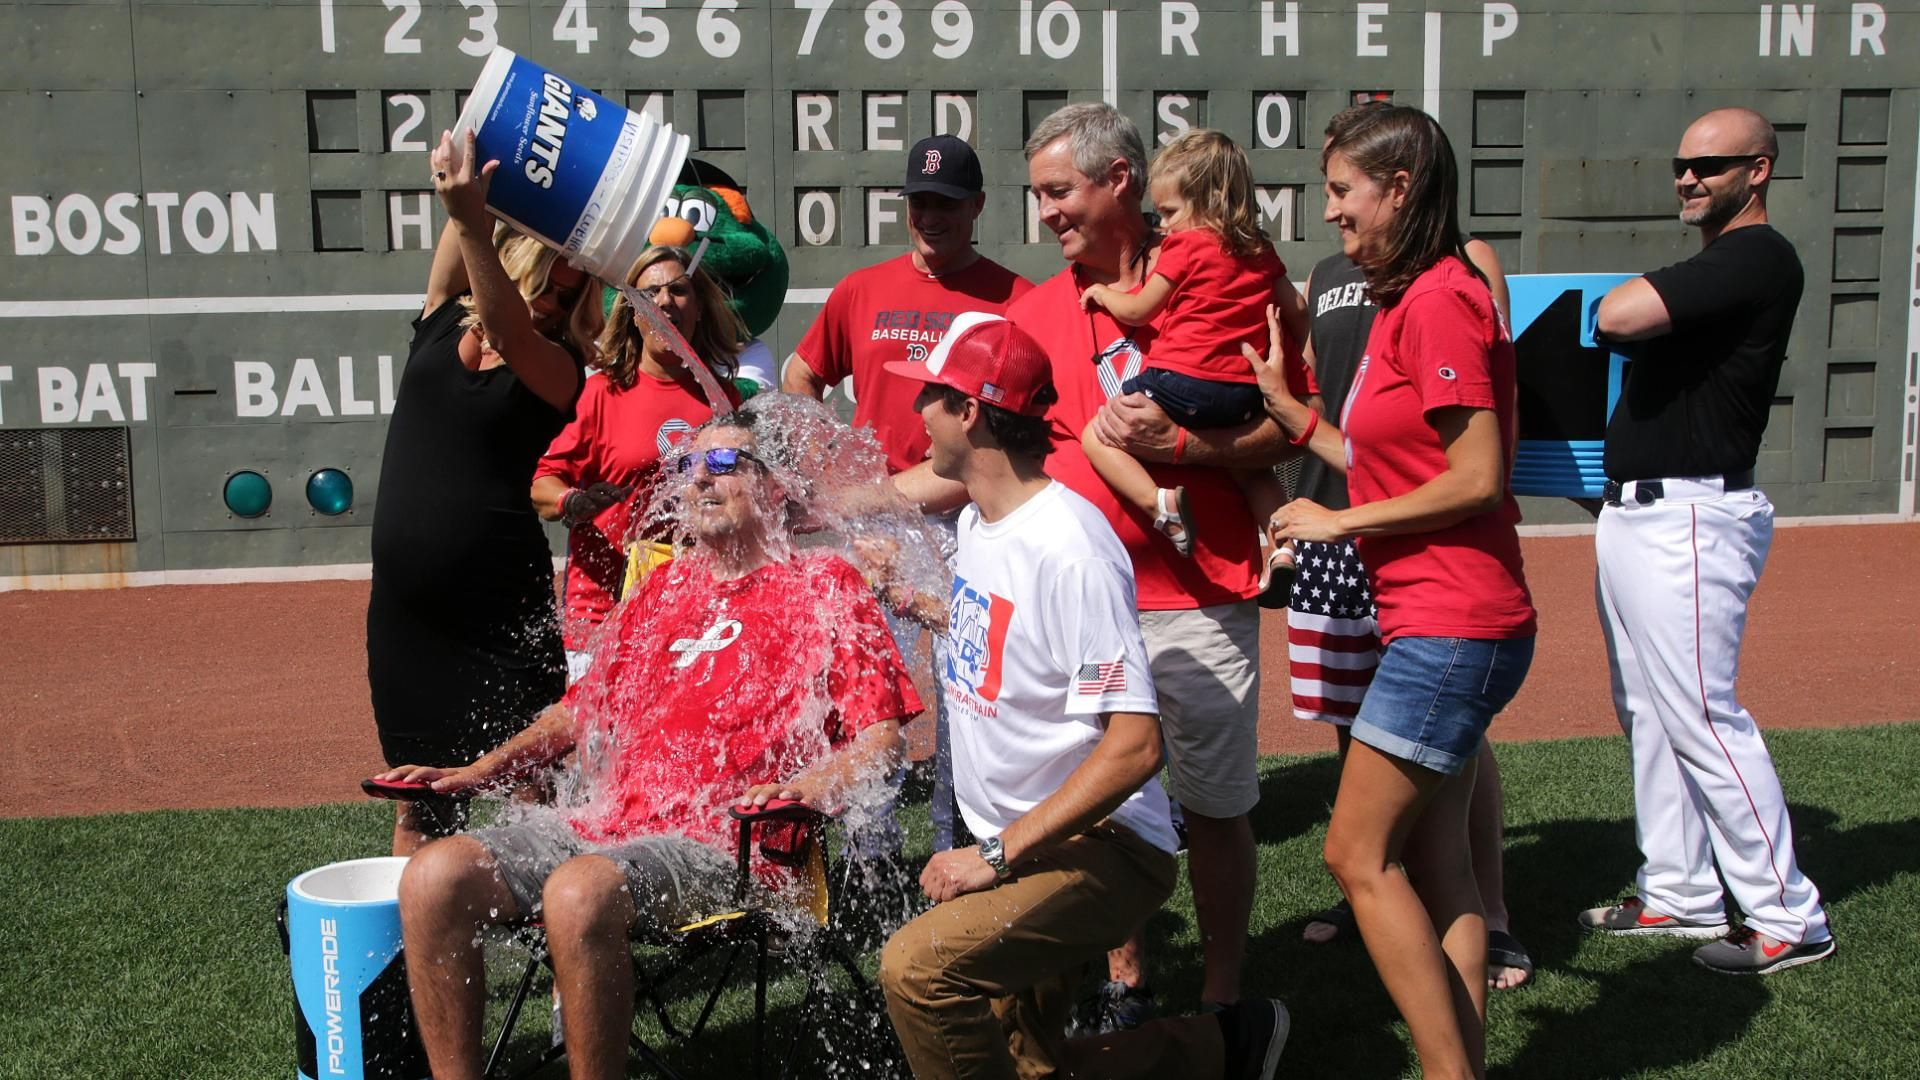 SC Featured: The inspiration behind the Ice Bucket Challenge